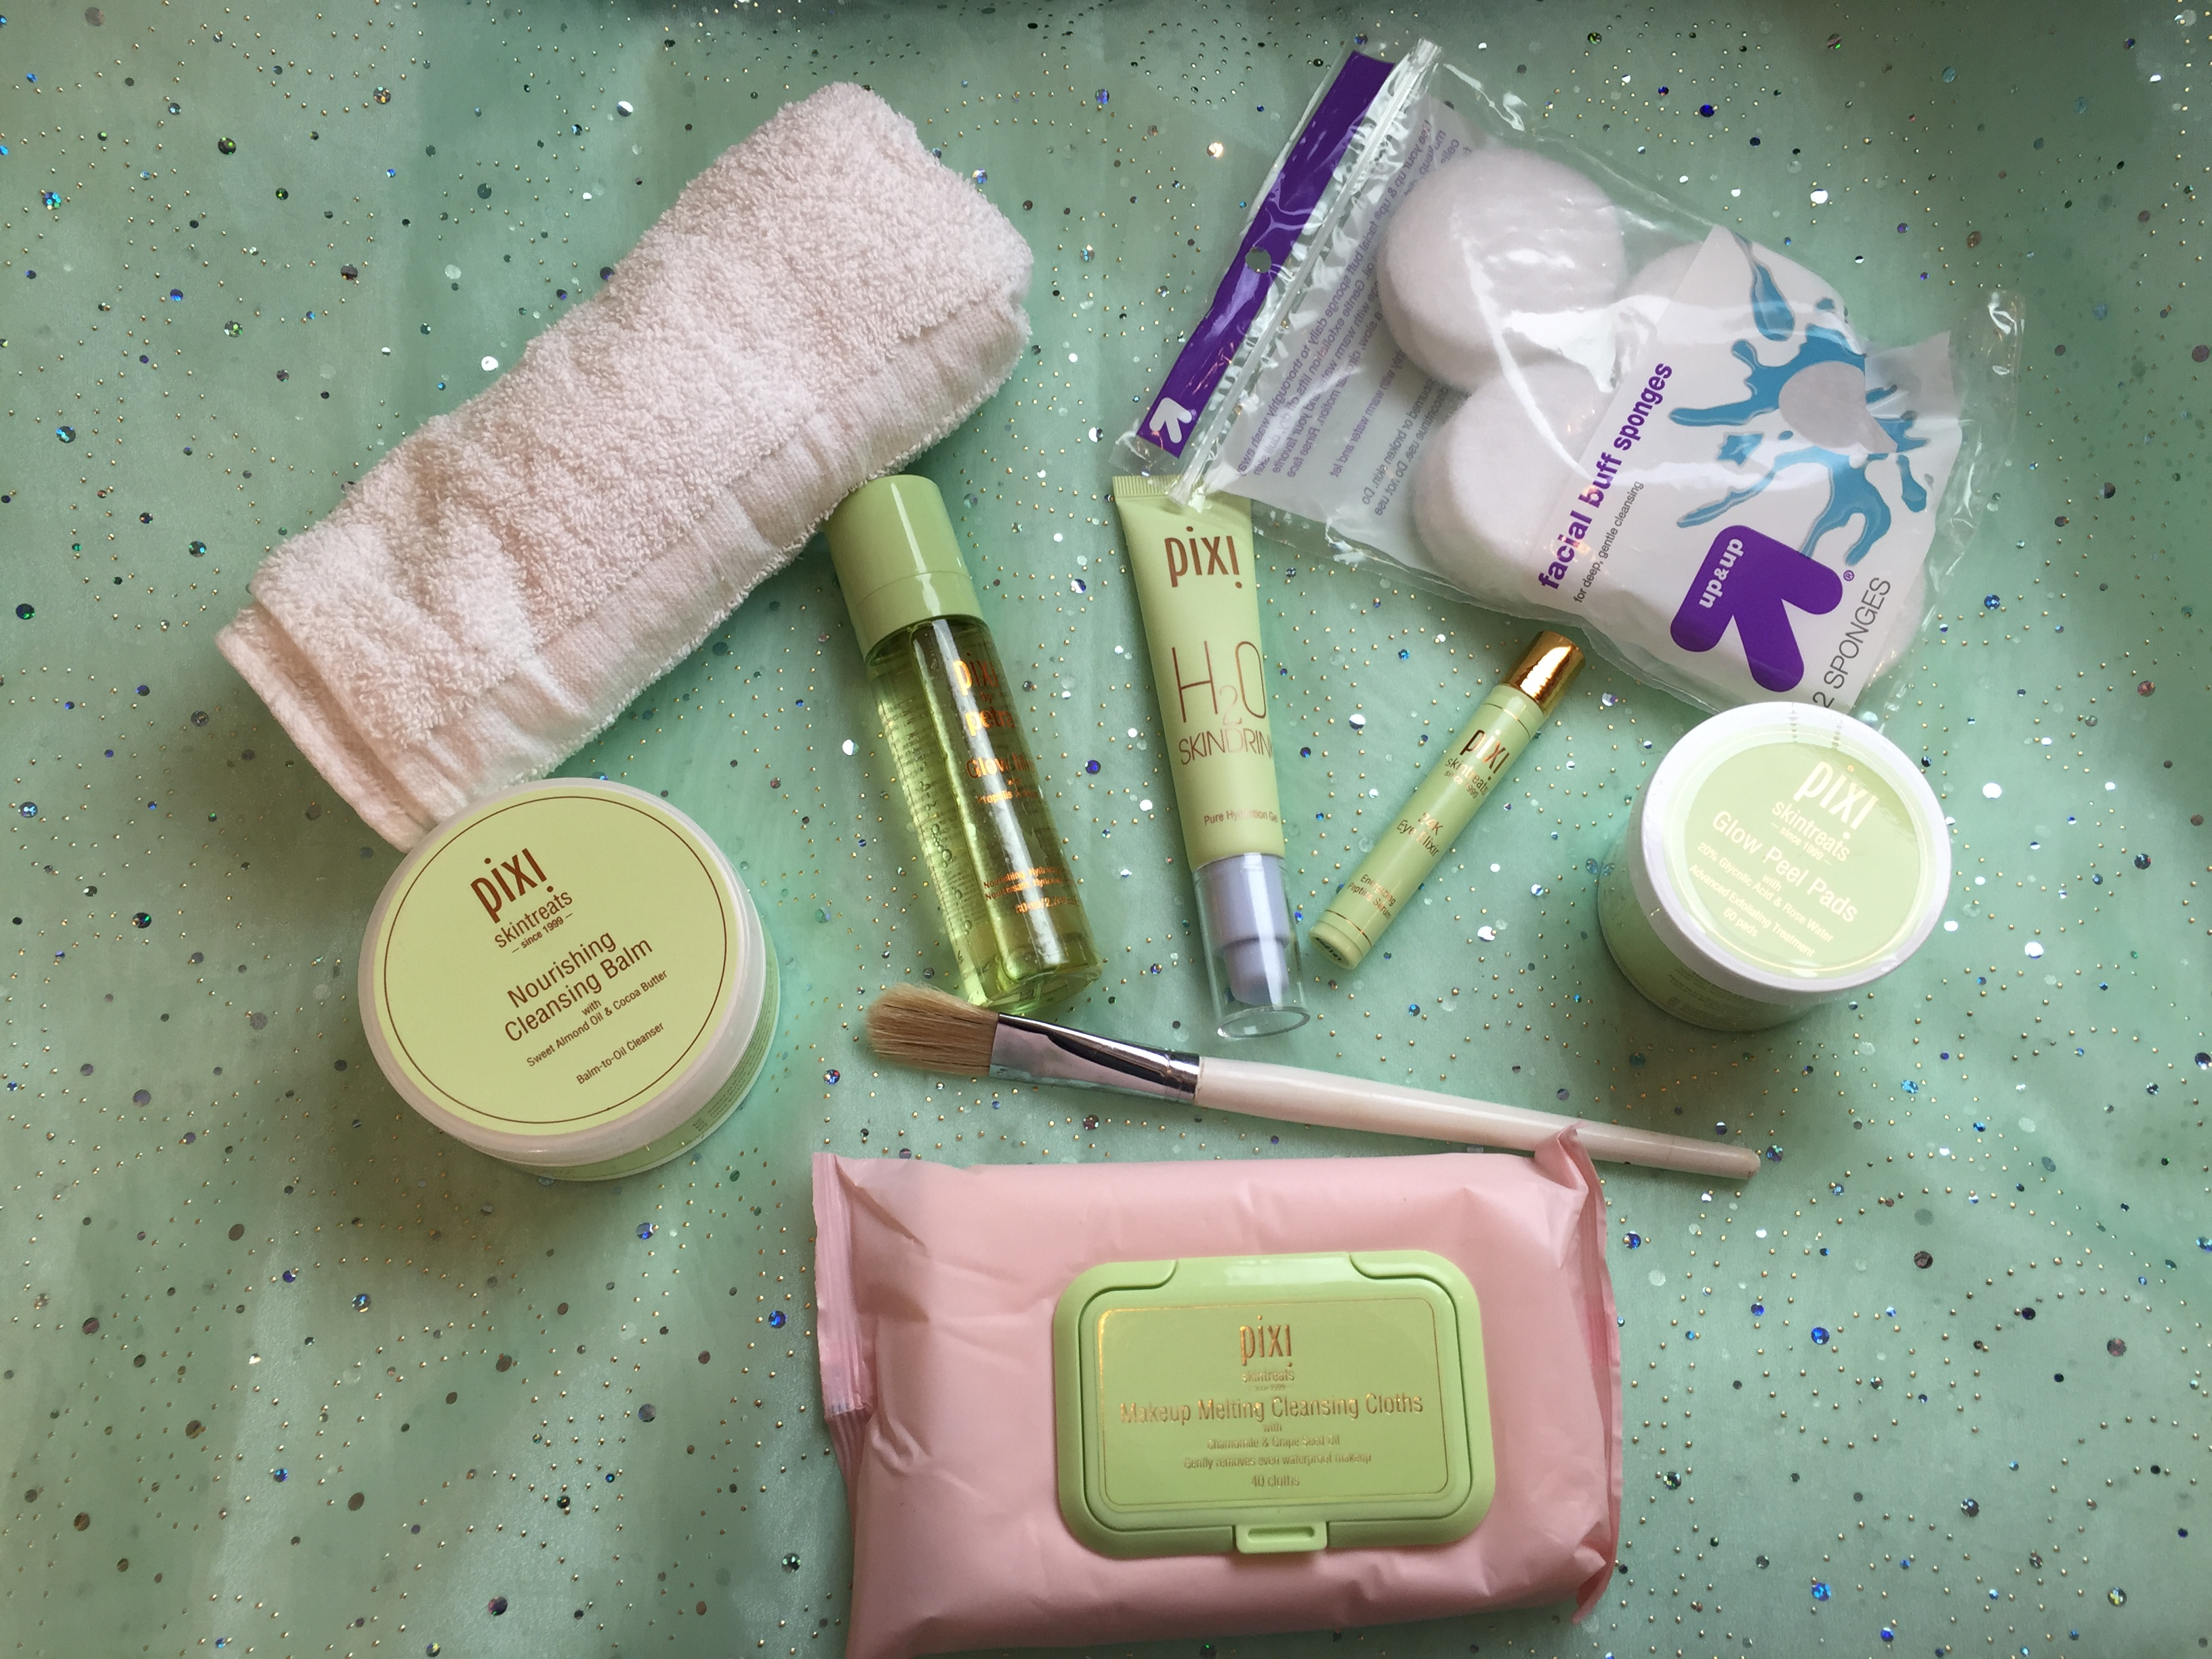 My Pixi Beauty Skintreat Review